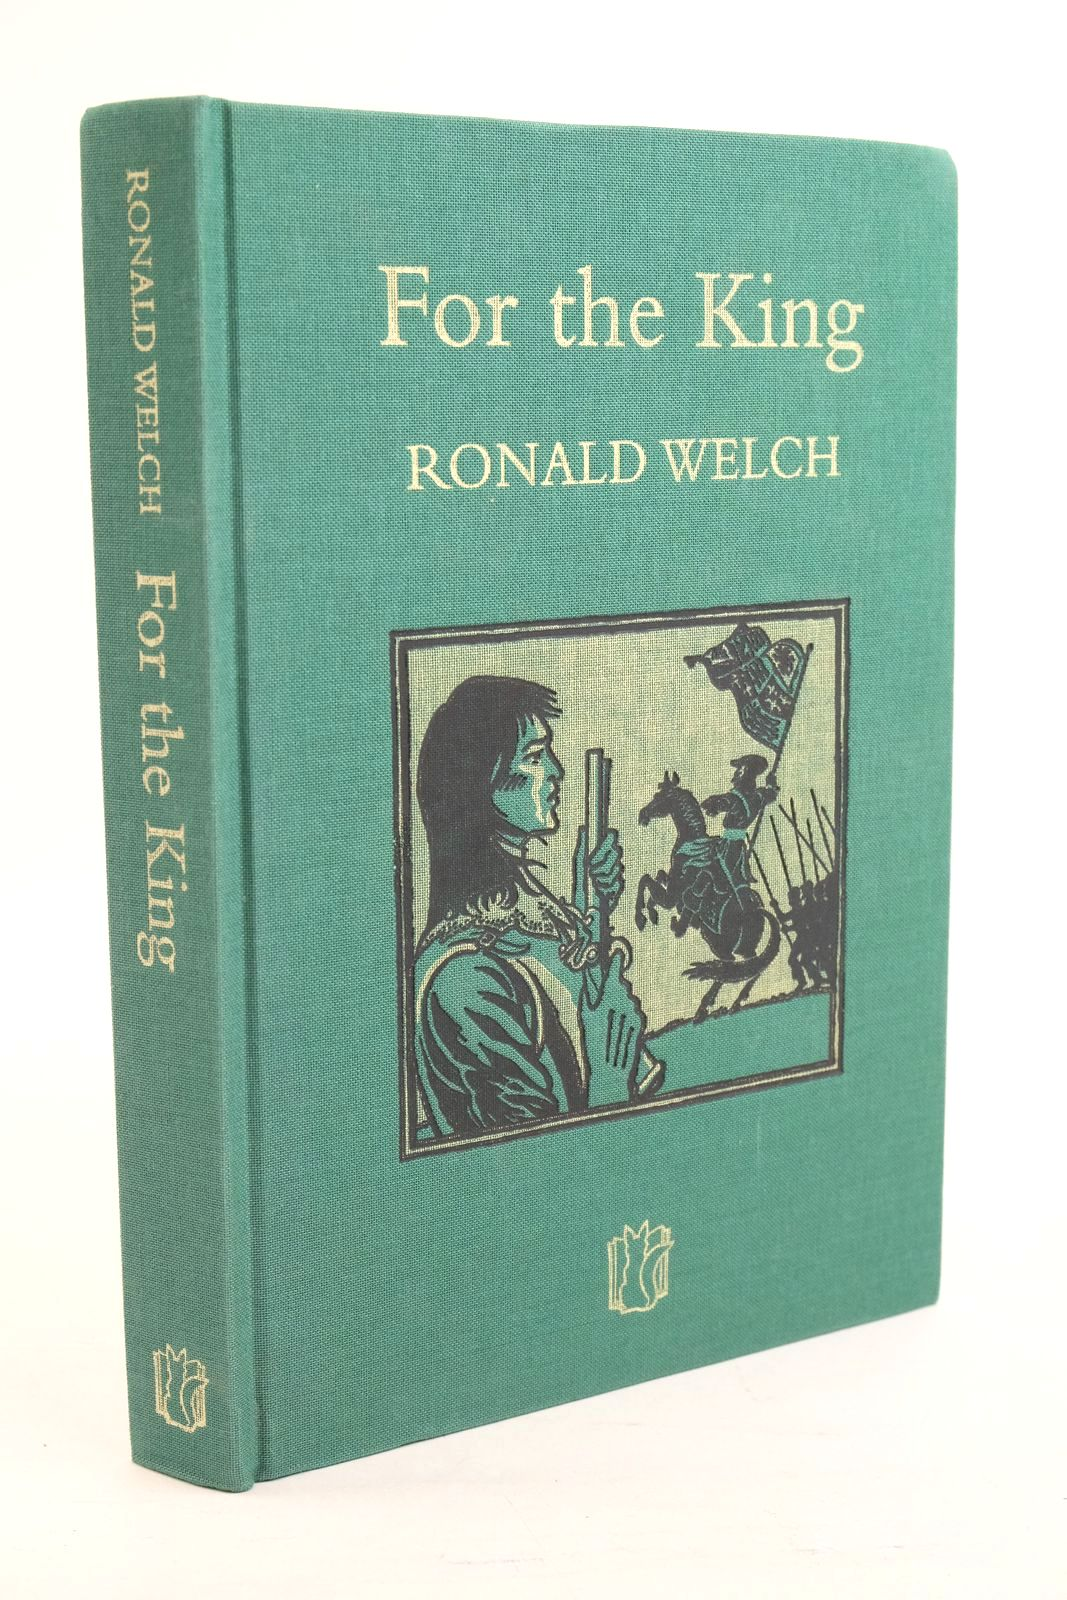 Photo of FOR THE KING written by Welch, Ronald illustrated by Stobbs, William published by Slightly Foxed Ltd. (STOCK CODE: 1320994)  for sale by Stella & Rose's Books